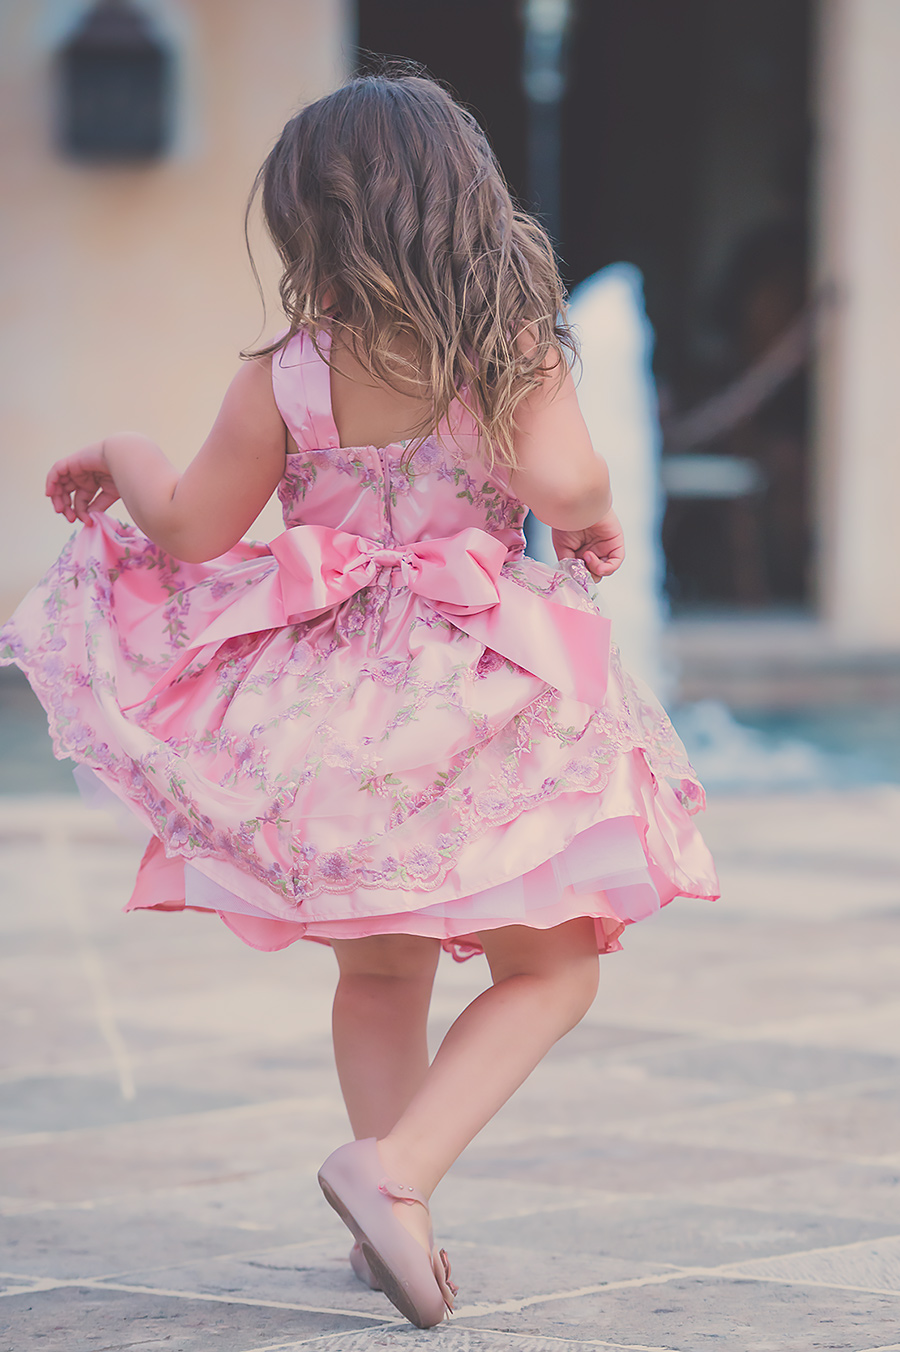 Jax Pink Dress Twirl